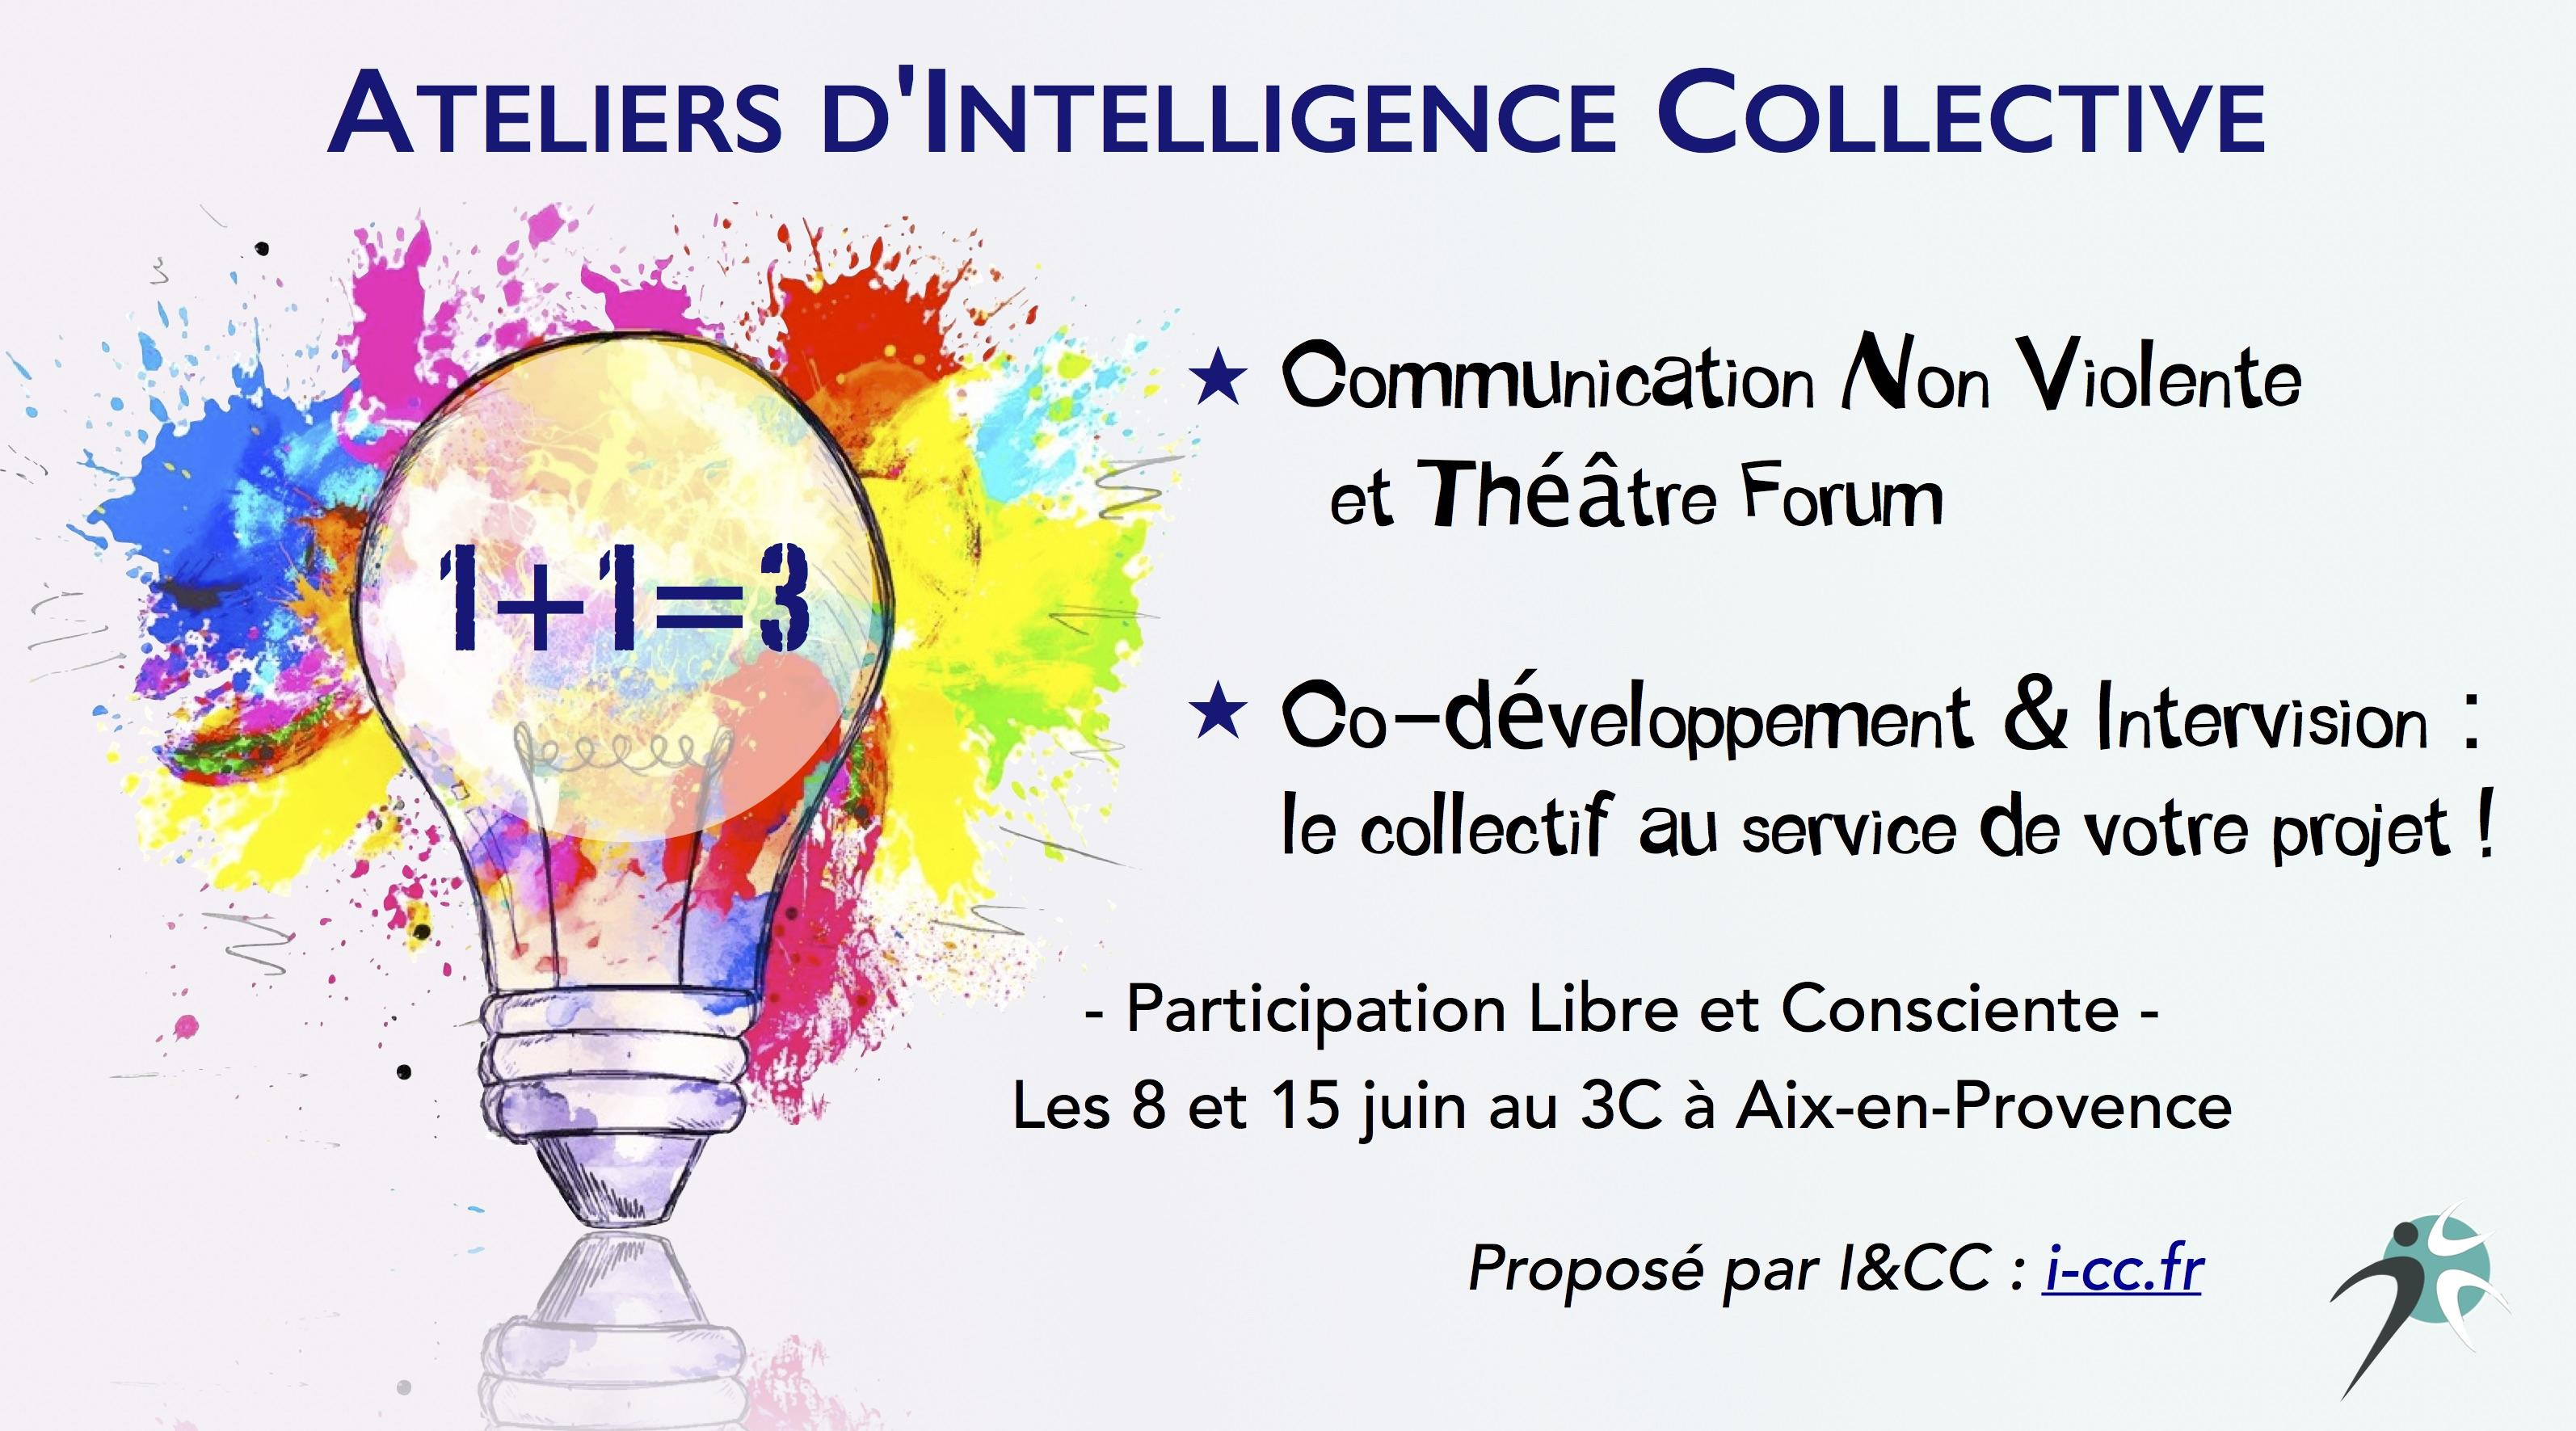 Ateliers d'Intelligence Collective